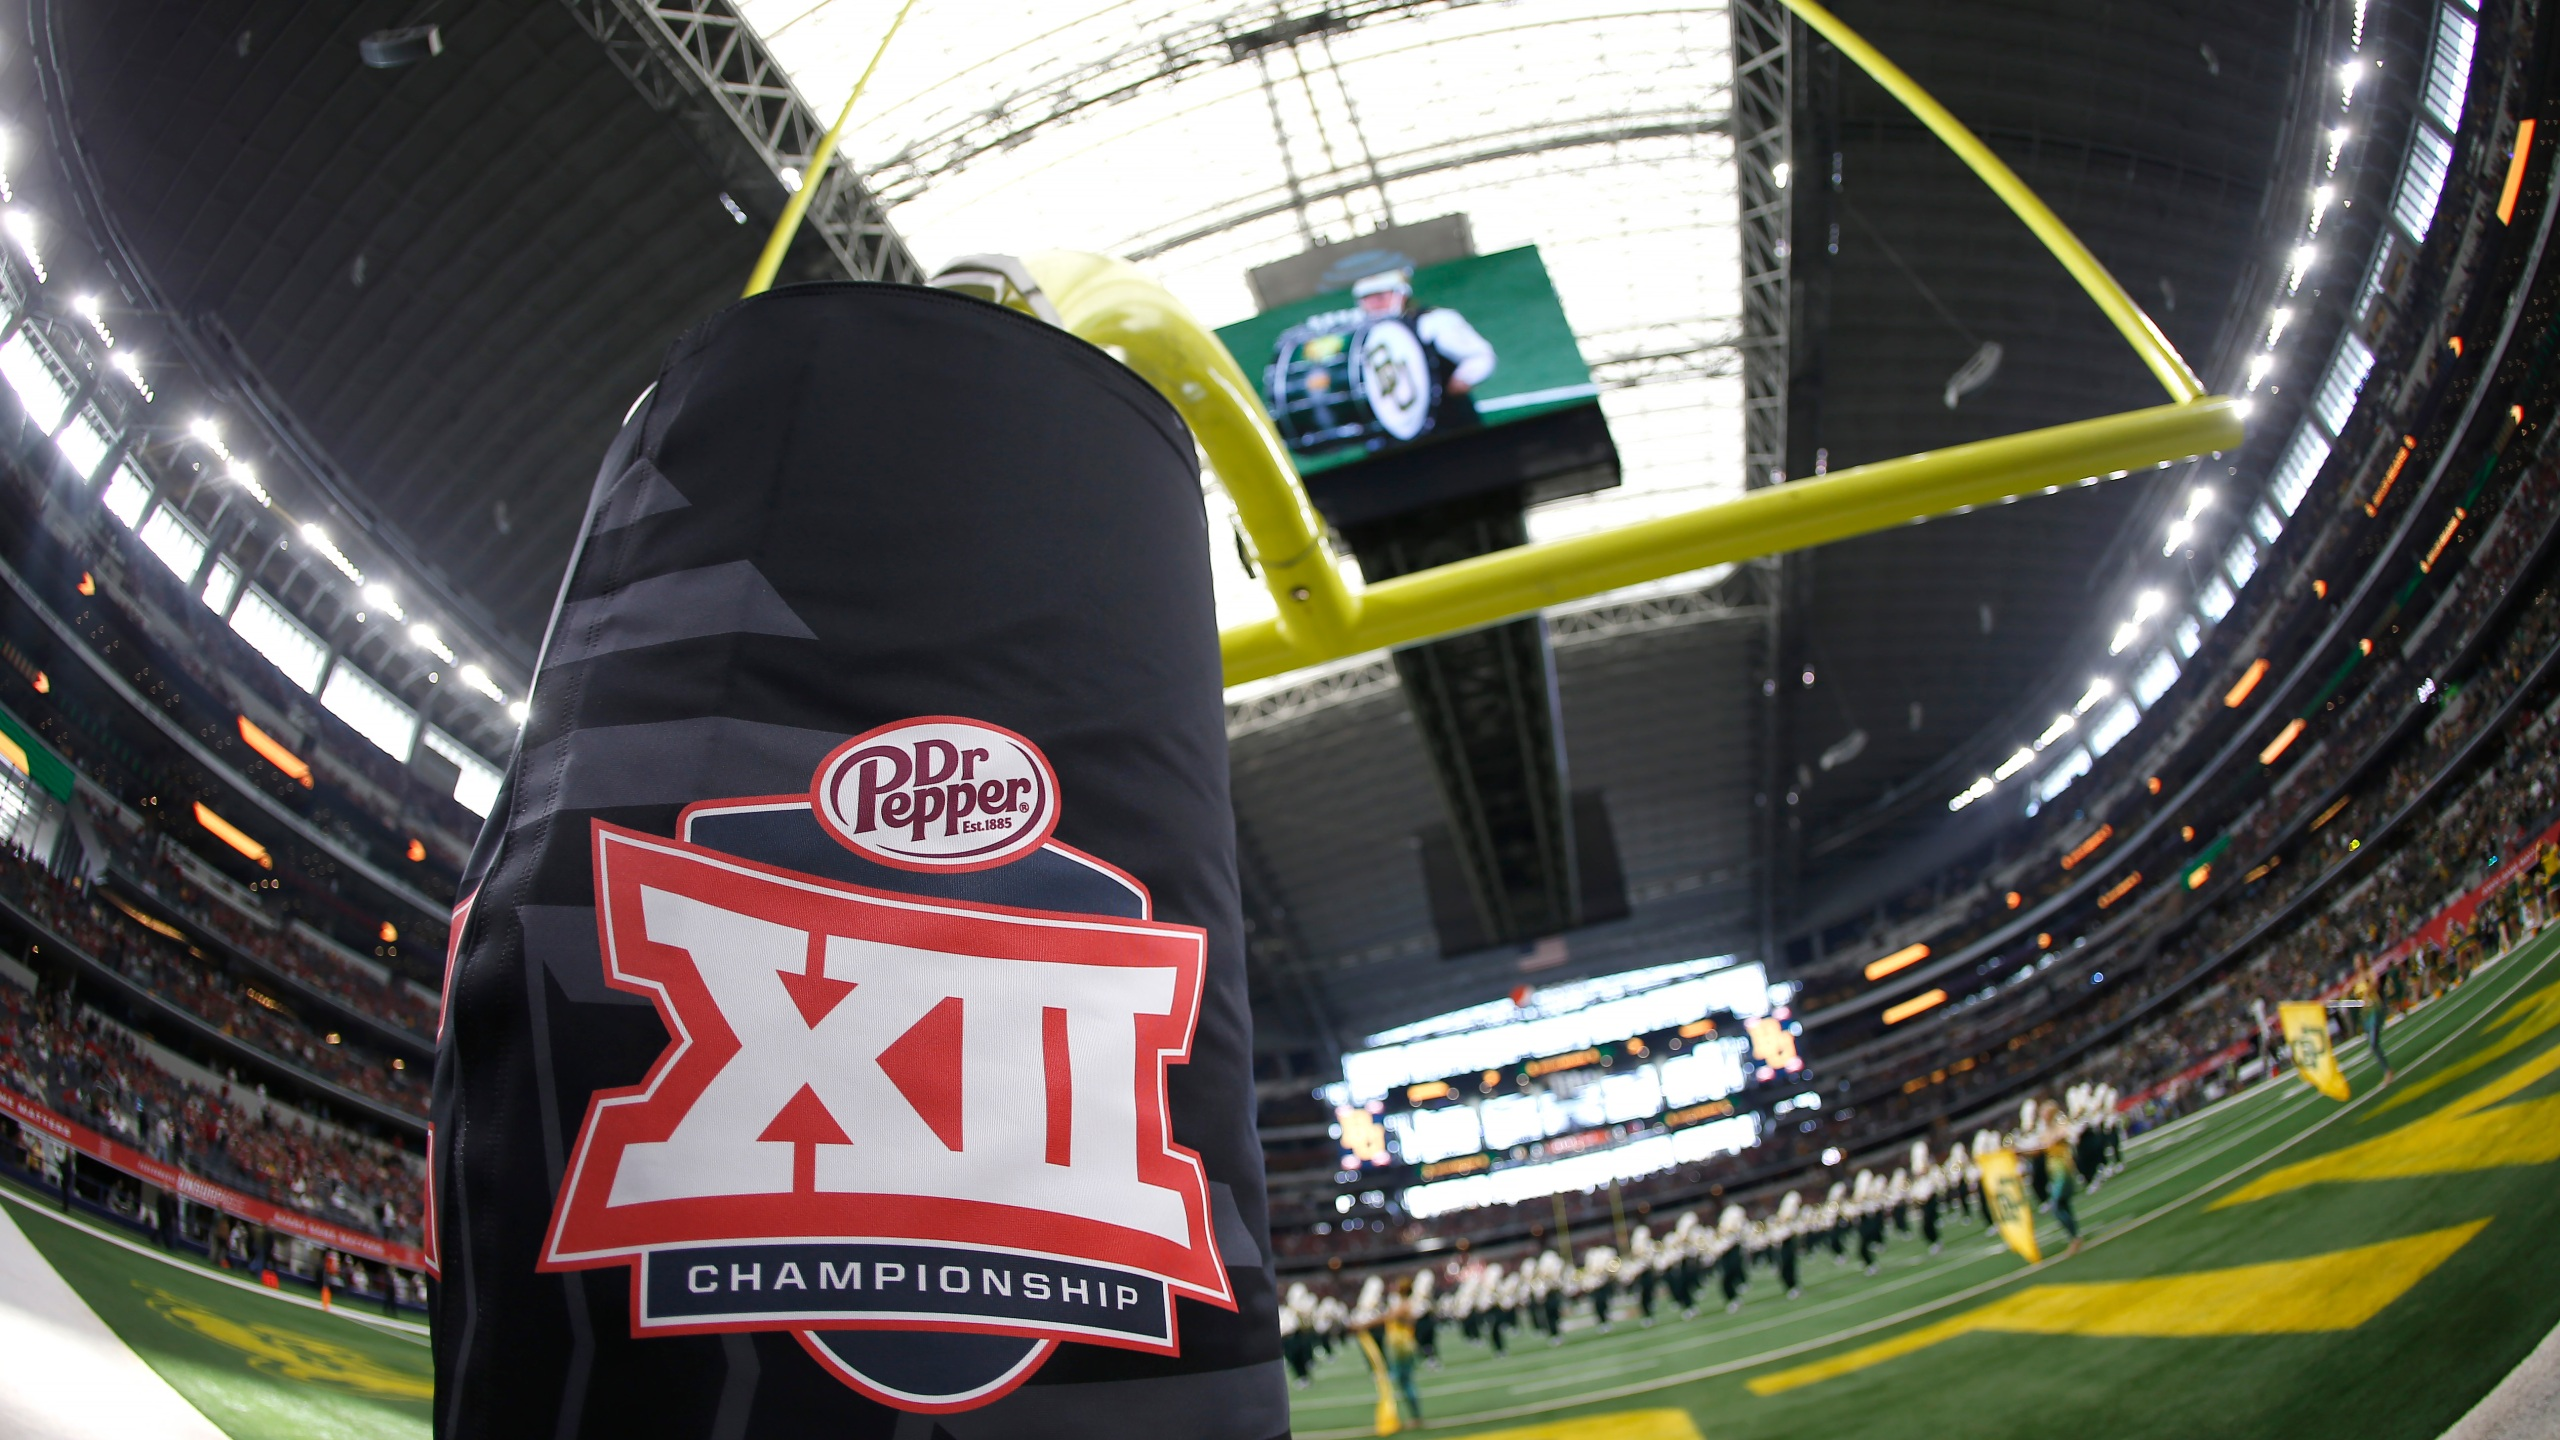 Detail view of Big 12 logo as the Baylor Bears band plays on the field before Baylor plays the Oklahoma Sooners in the Big 12 Football Championship at AT&T Stadium on December 7, 2019 in Arlington, Texas. (Ron Jenkins/Getty Images)